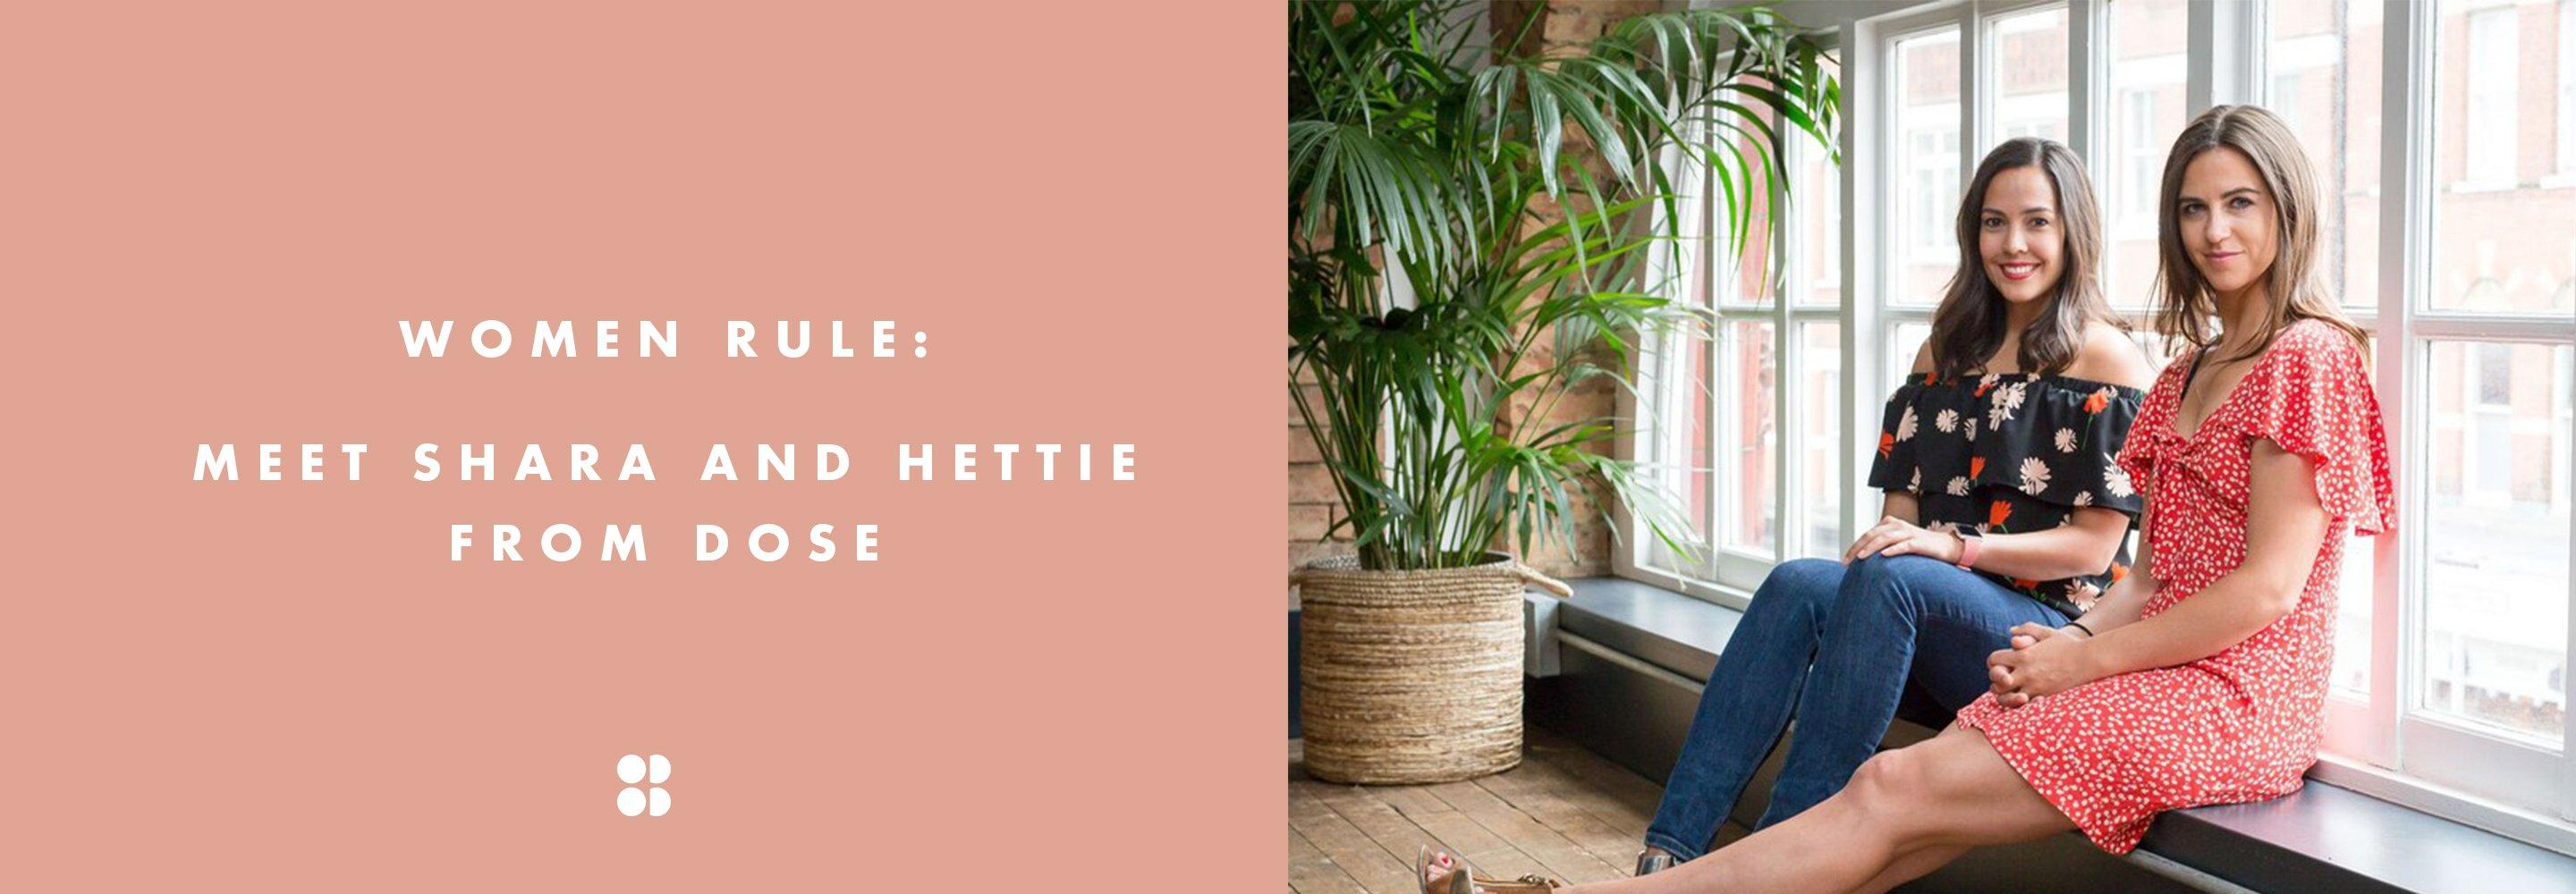 Women Rule: Meet Shara and Hettie from DOSE